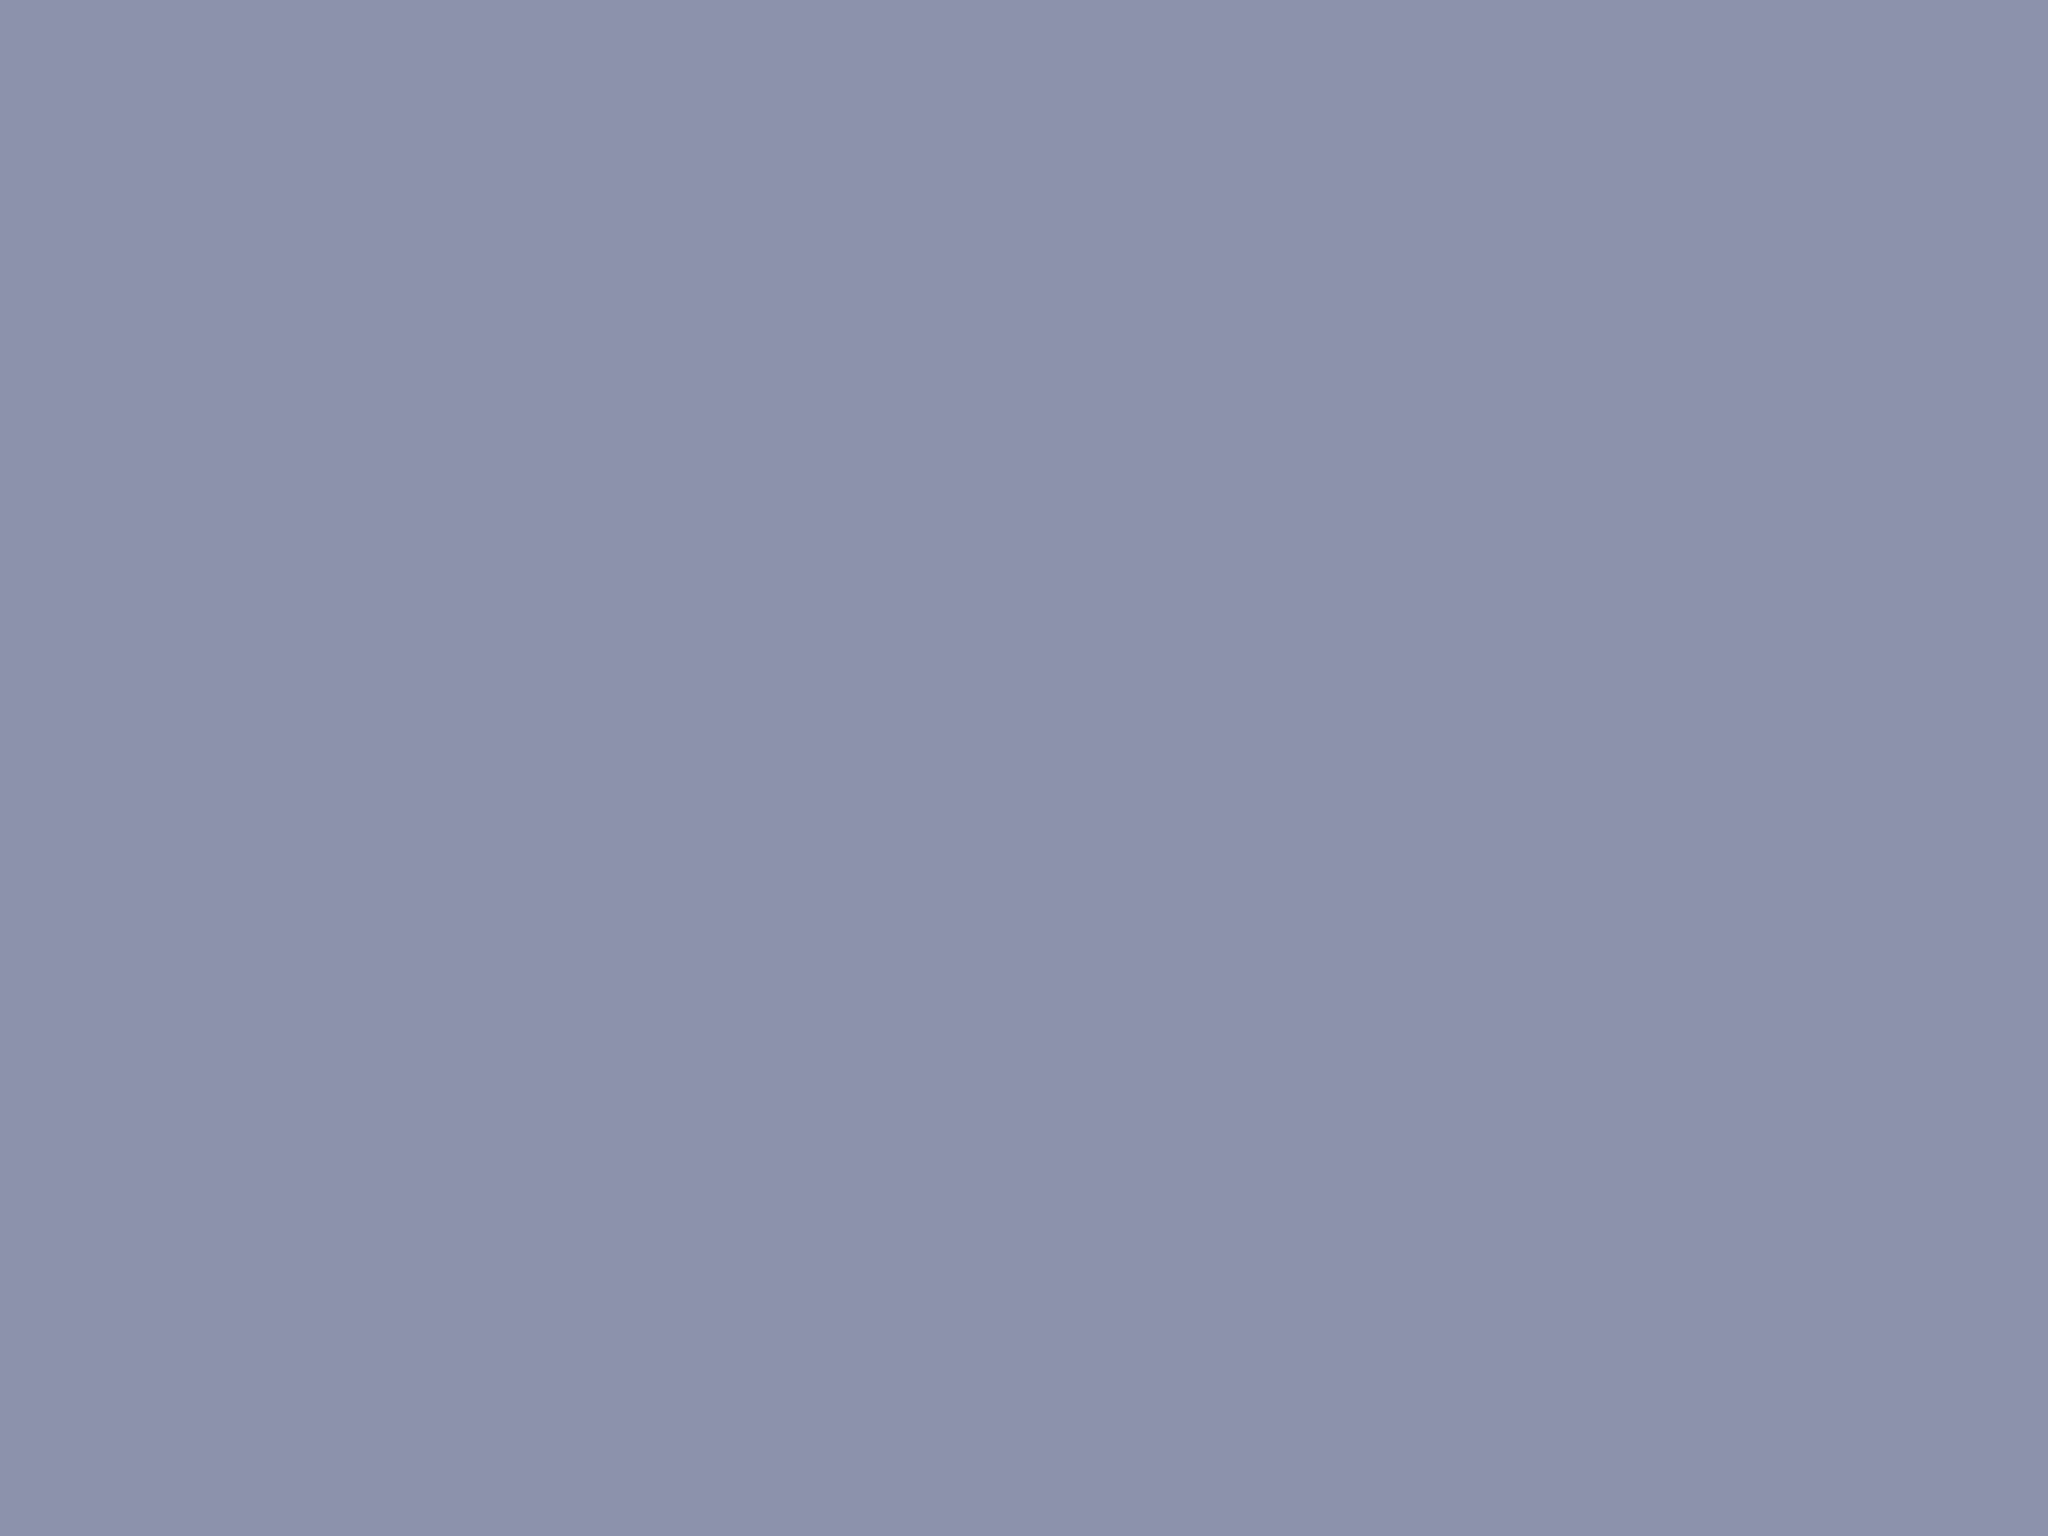 2048x1536 Gray-blue Solid Color Background